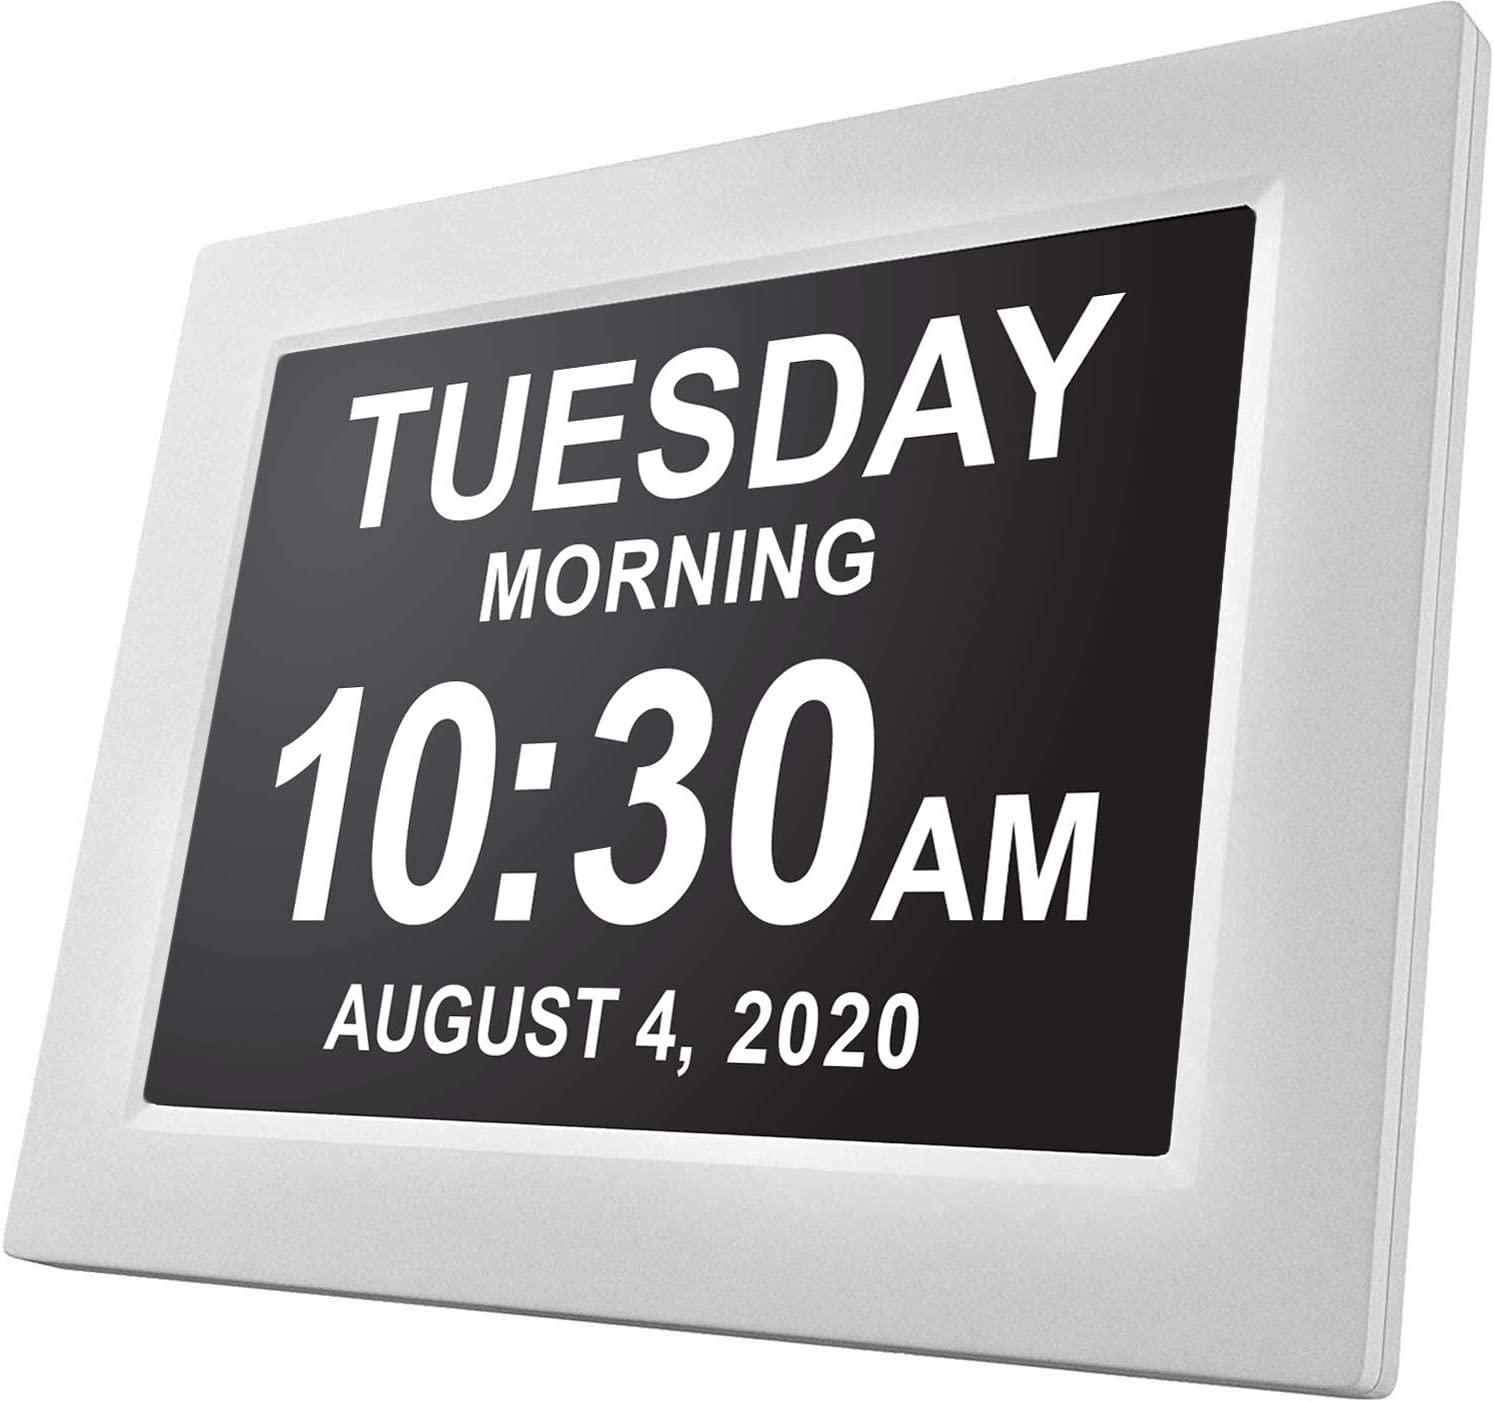 Multi-Lingual Impaired Vision Clock